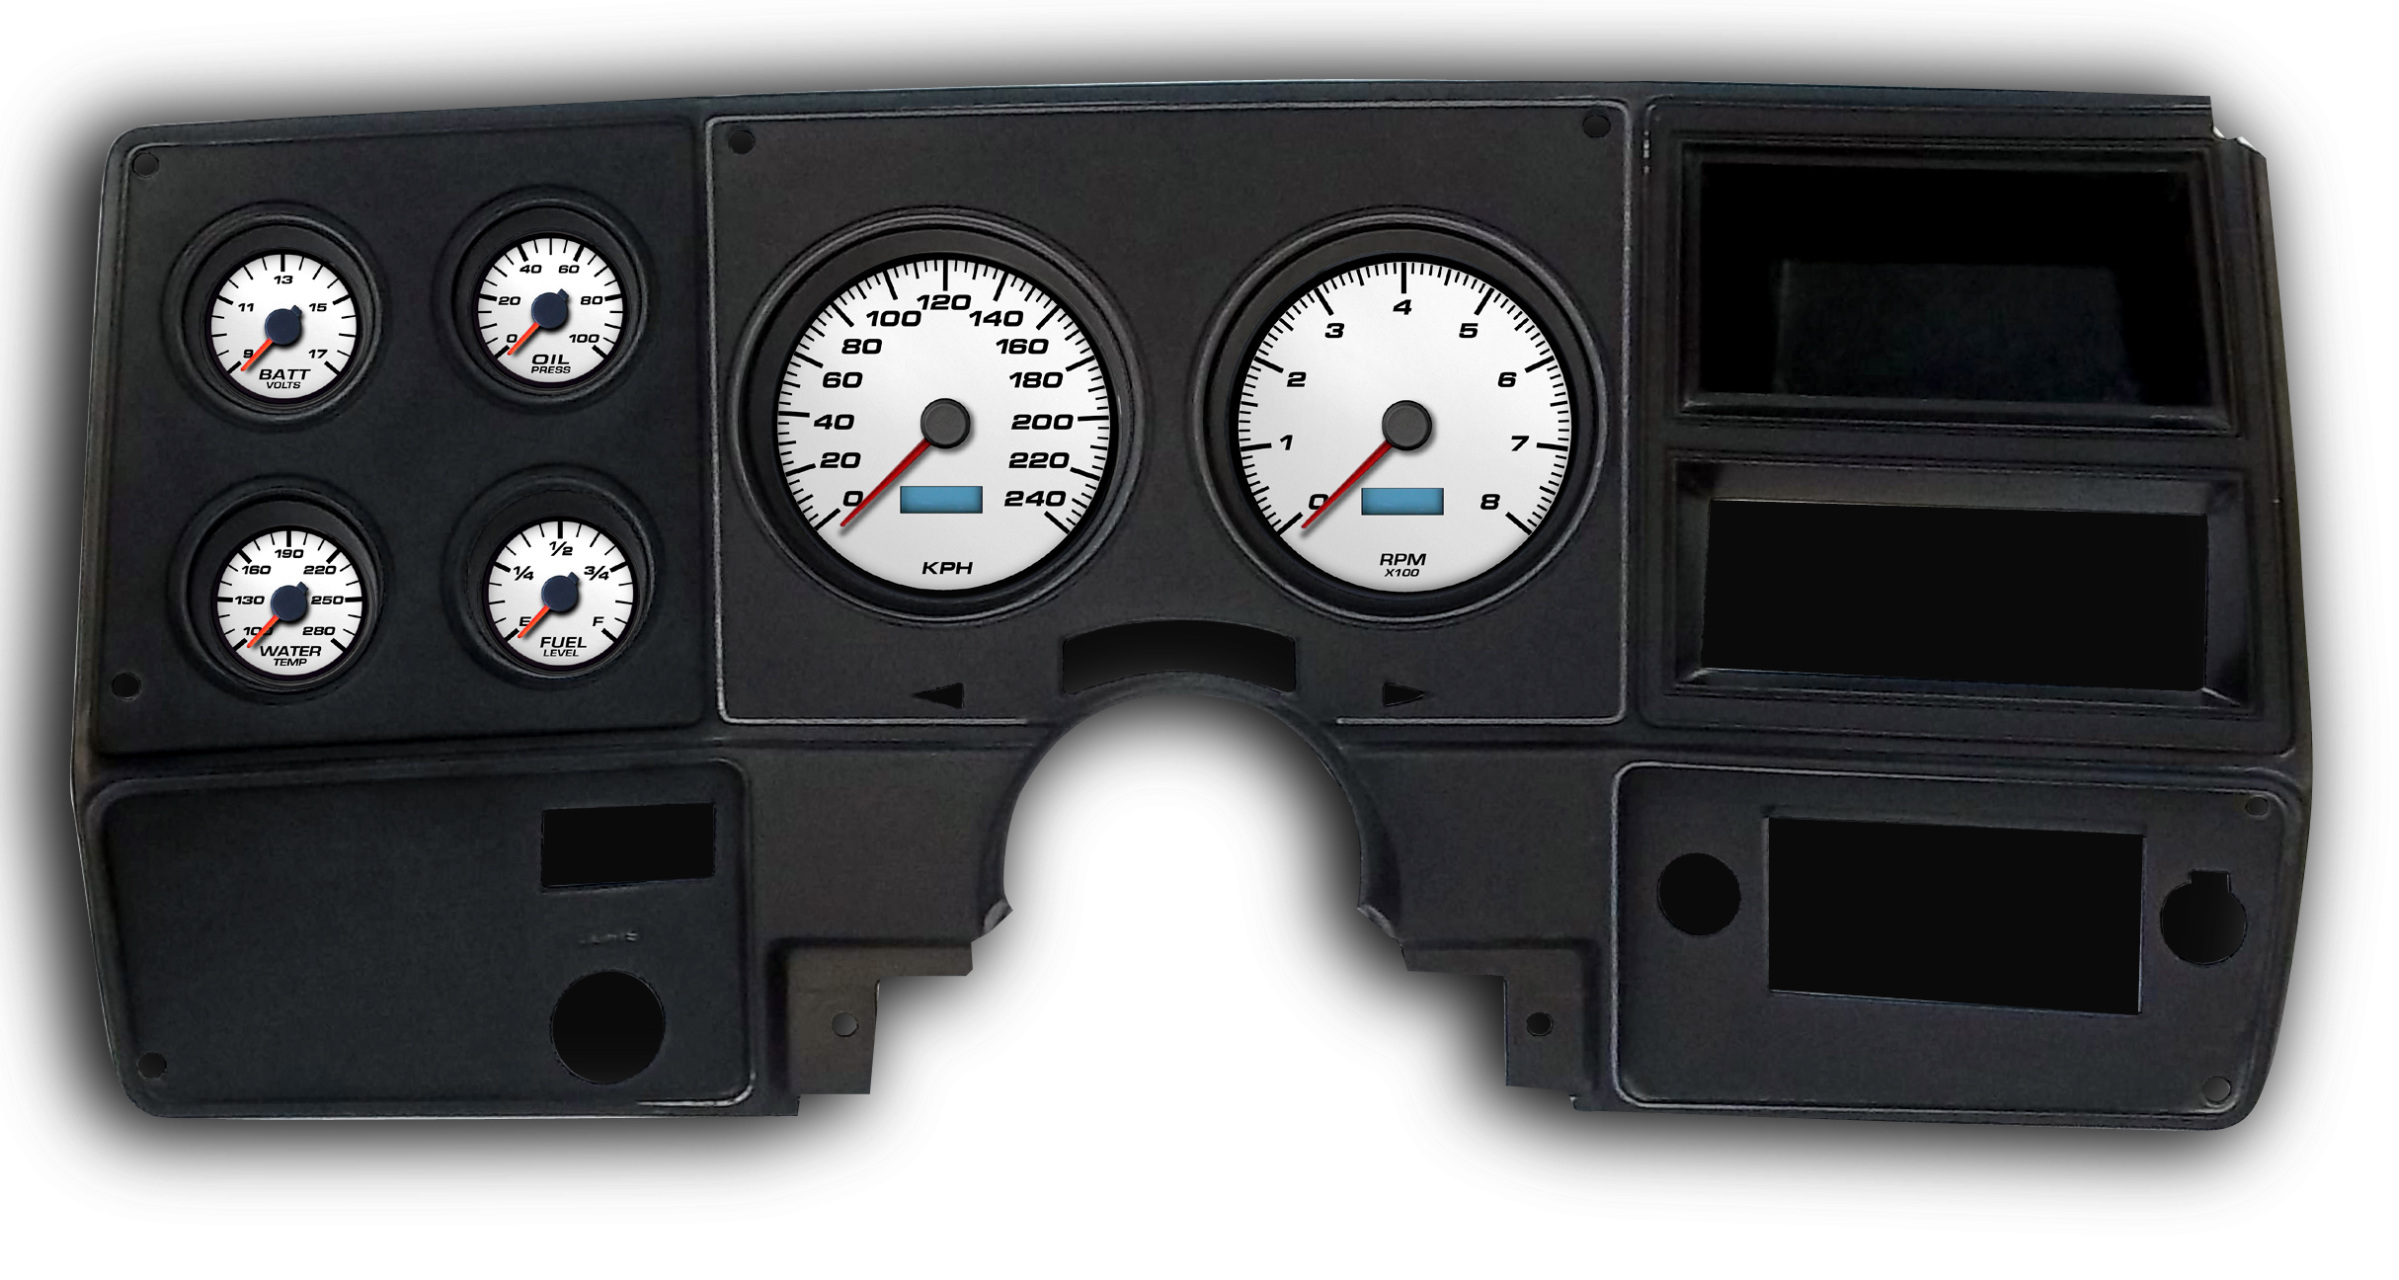 s689572963557007764_p2310_i1_w1280 1973 1987 chevrolet truck direct fit dash packages egaugesplus Autometer Gauge Brackets at fashall.co